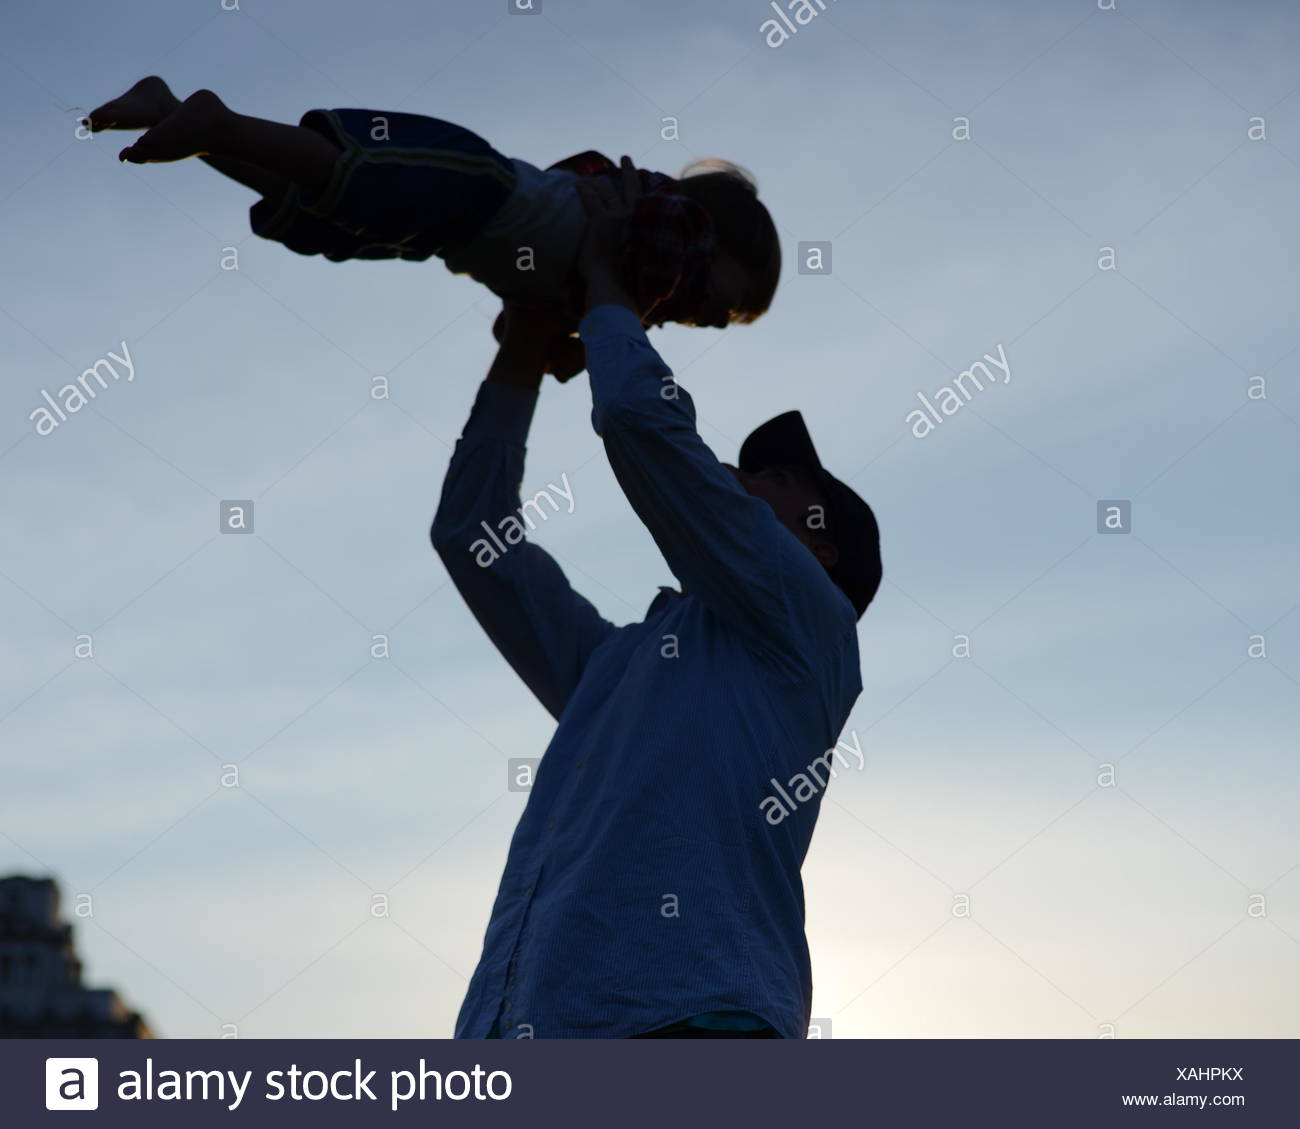 Low Angle View Of Man Carrying Baby contre le ciel Photo Stock